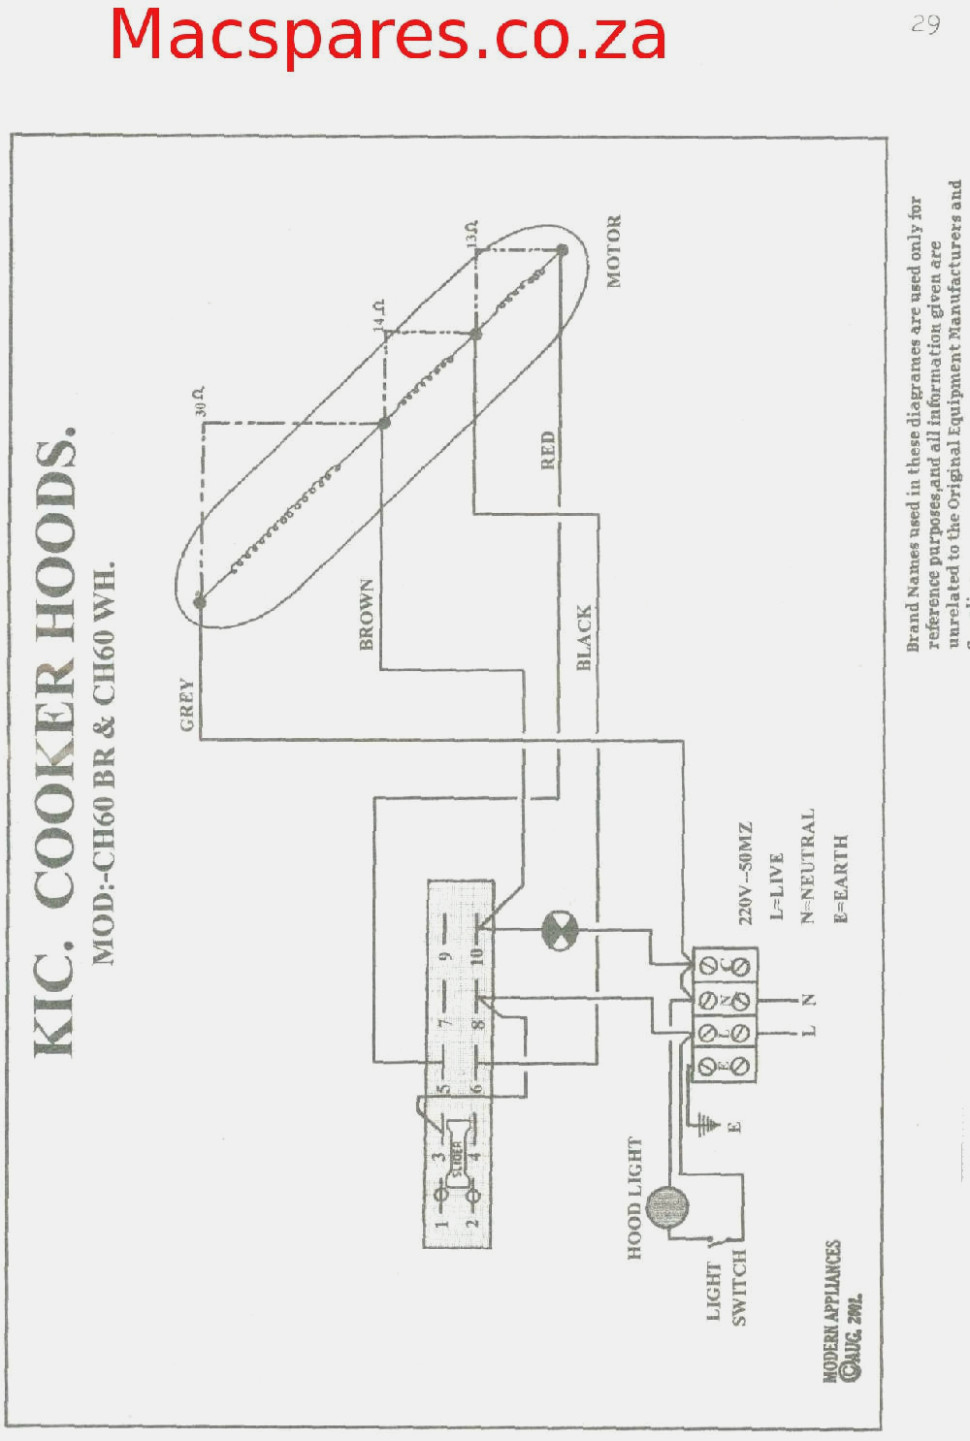 Infinite Switch Wiring Diagram - Trusted Wiring Diagram Online - Infinite Switch Wiring Diagram